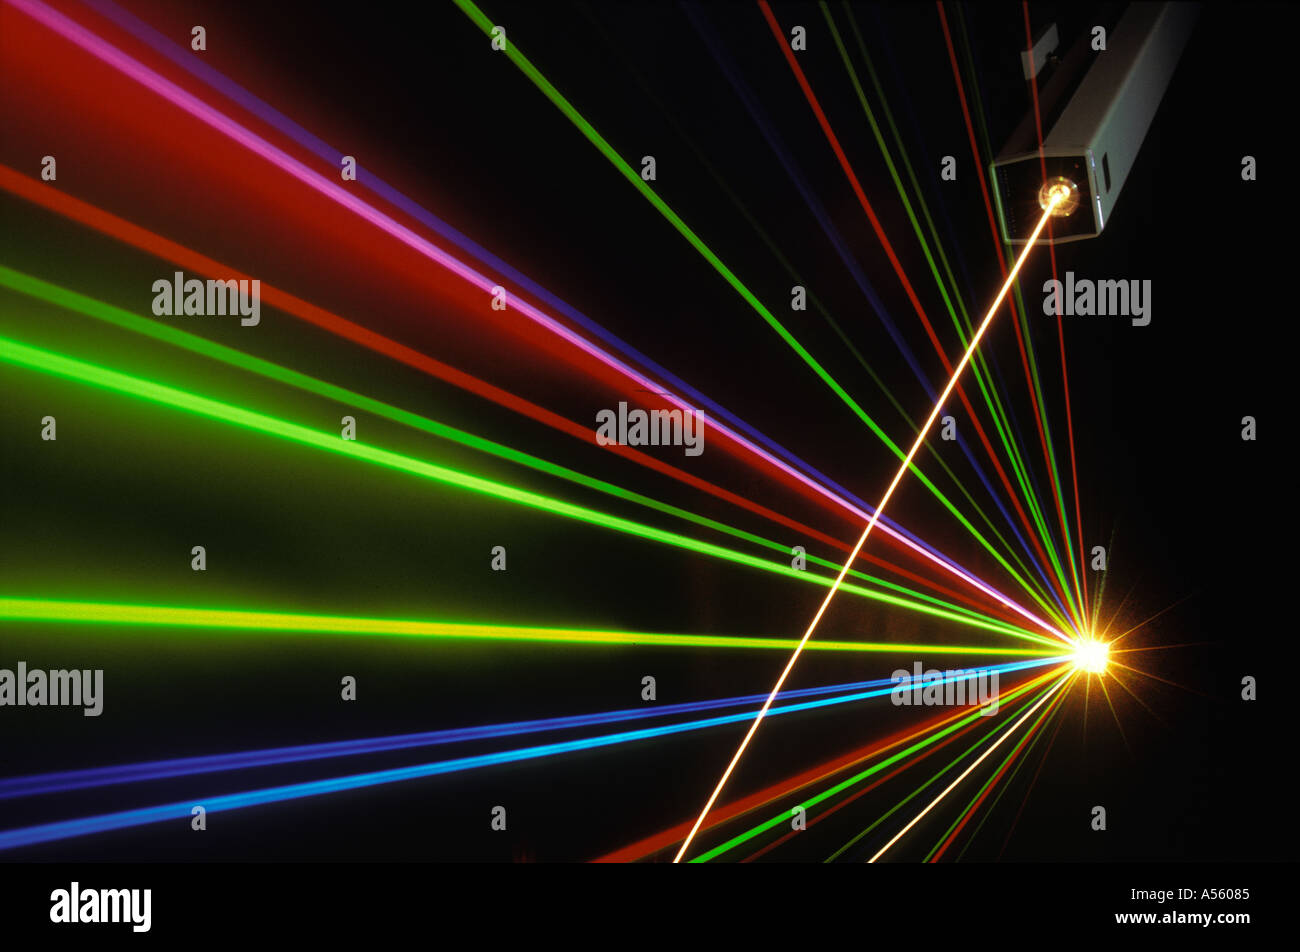 laser light beams at lab in Silicon Valley California - Stock Image